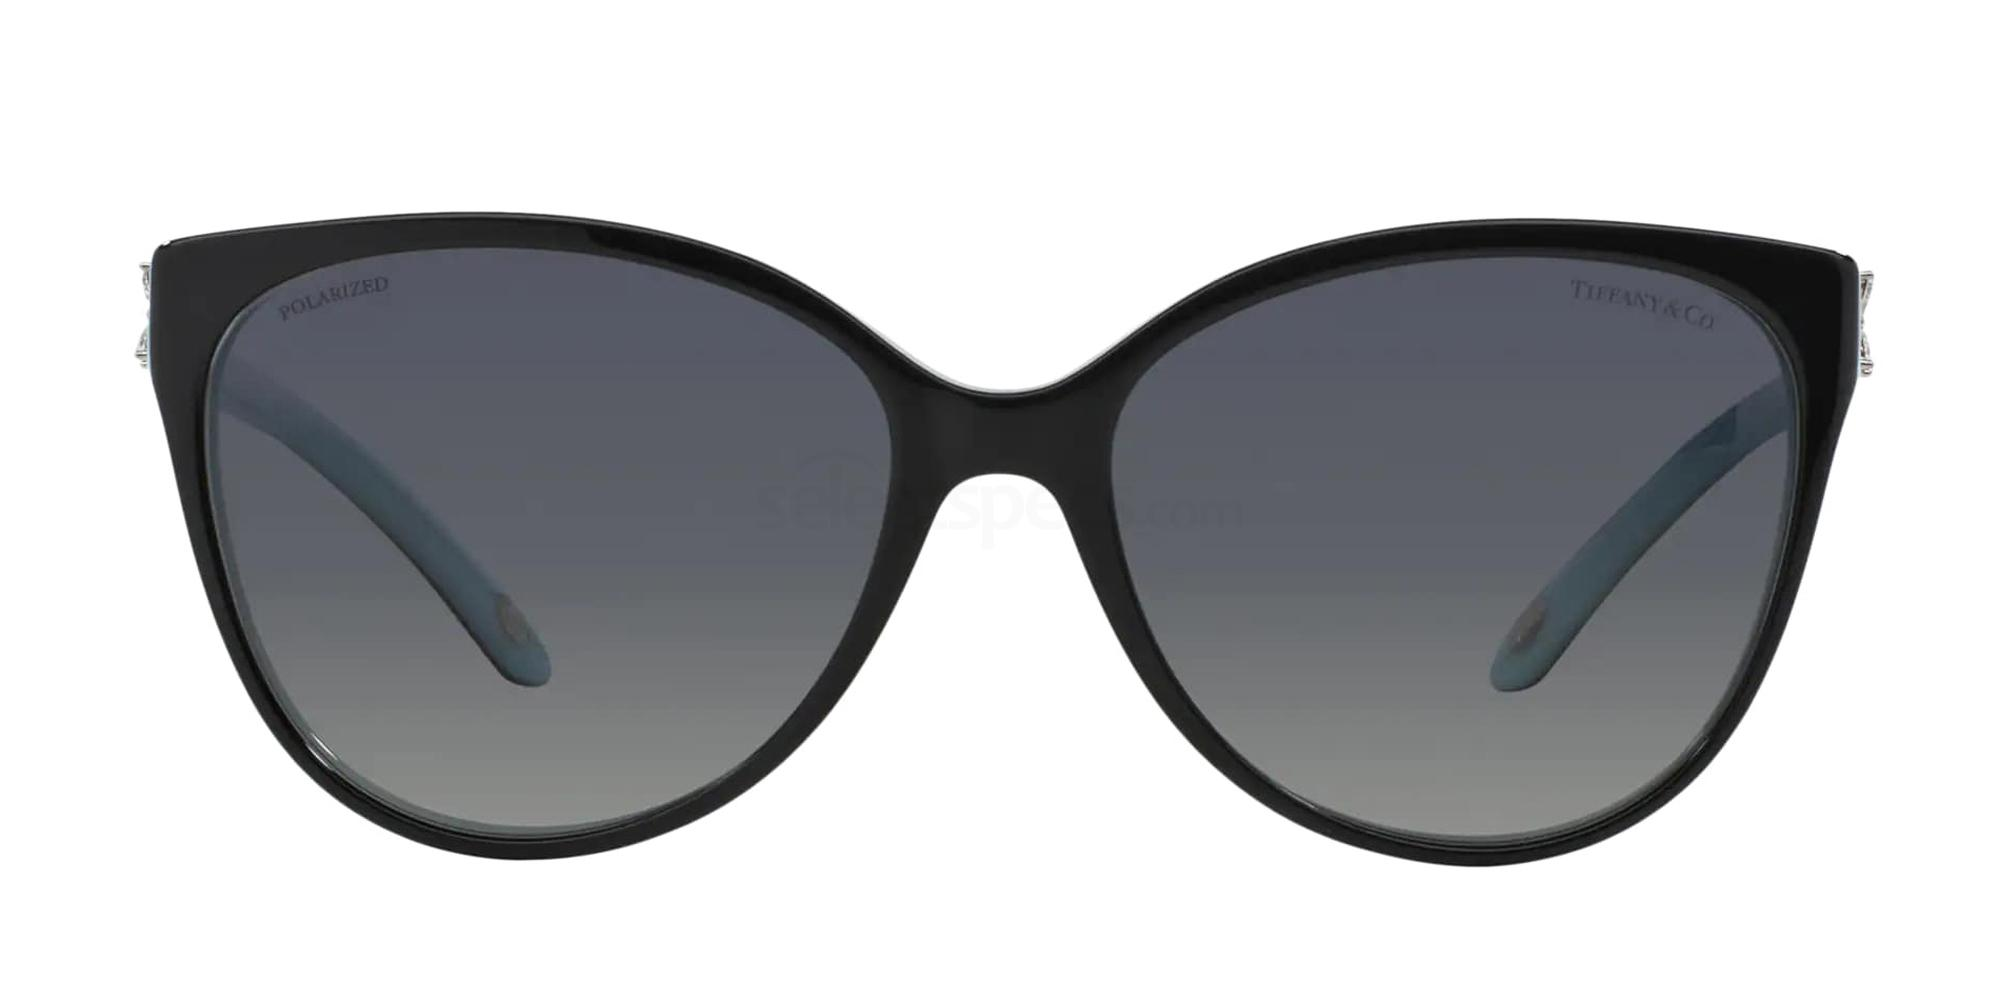 8055T3 TF4089B Sunglasses, Tiffany & Co.